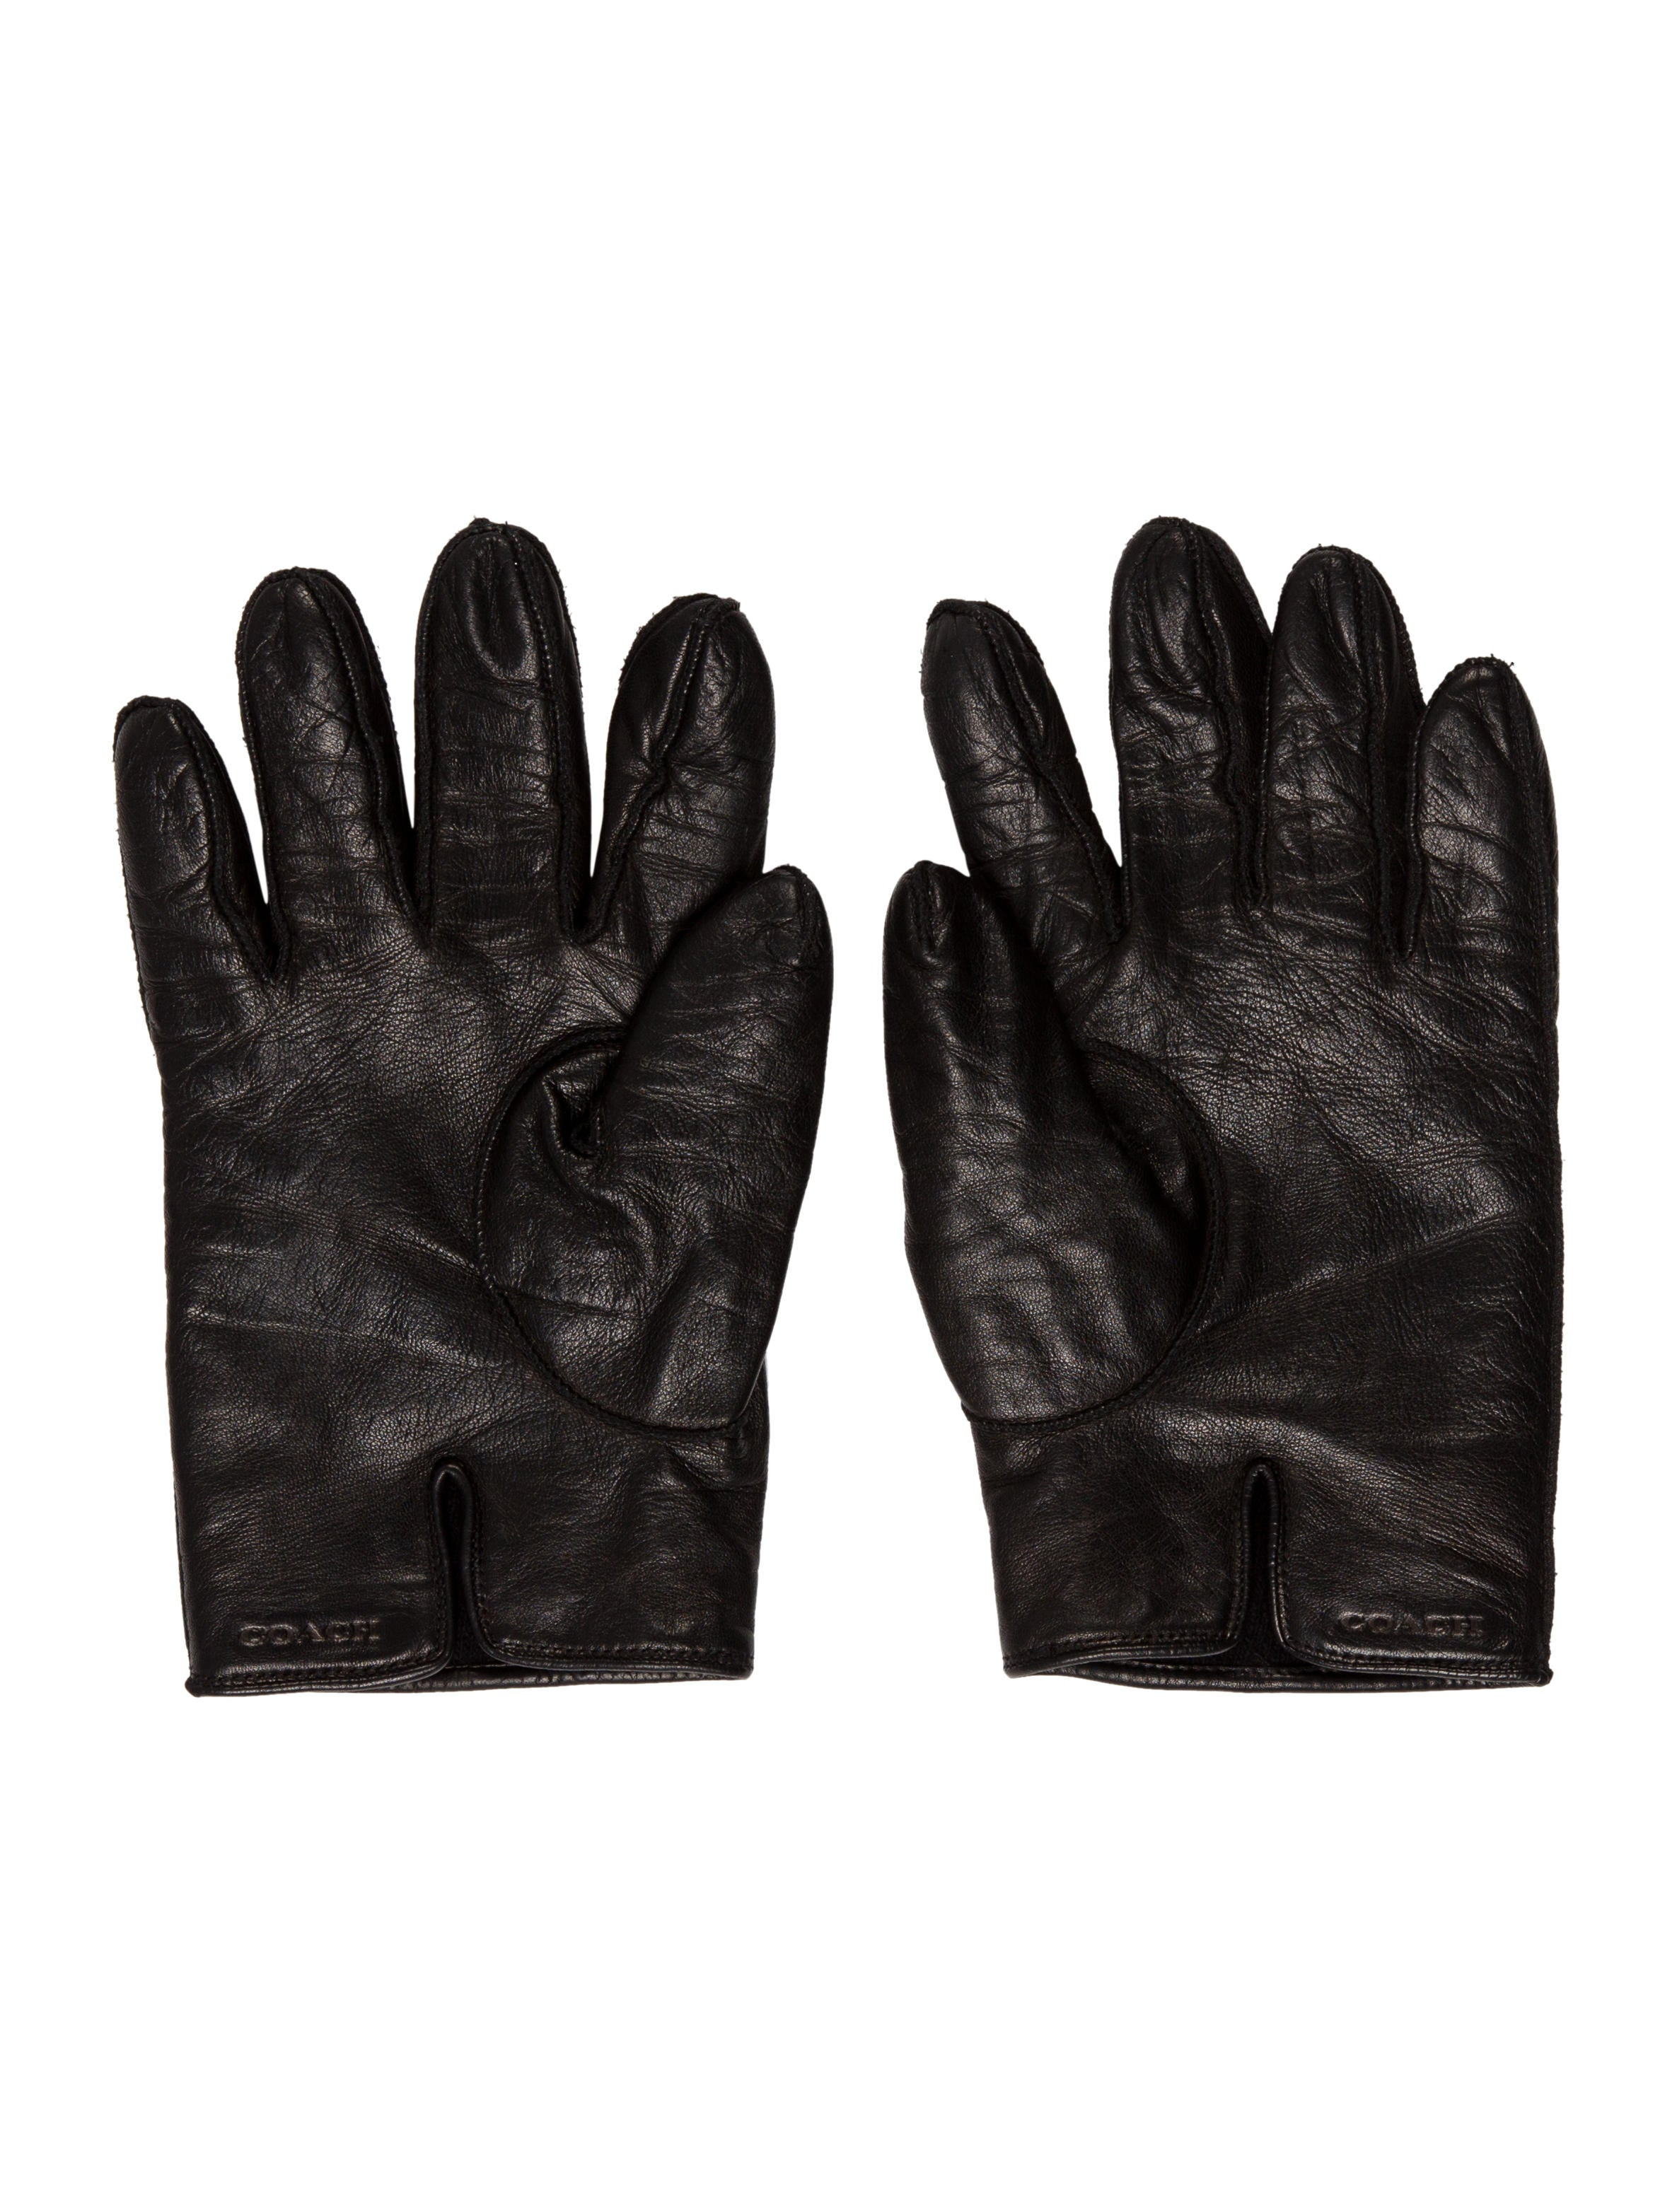 Showing 41 fine leather gloves + Save this search. All / Women / Accessories / Gloves Gloves 41 Size Choose a category first to see available options Price & Deals $ to Set. On Sale New To Sale Coupon Code Over 50% Off Brand Agnelle 1 Black Diamond.